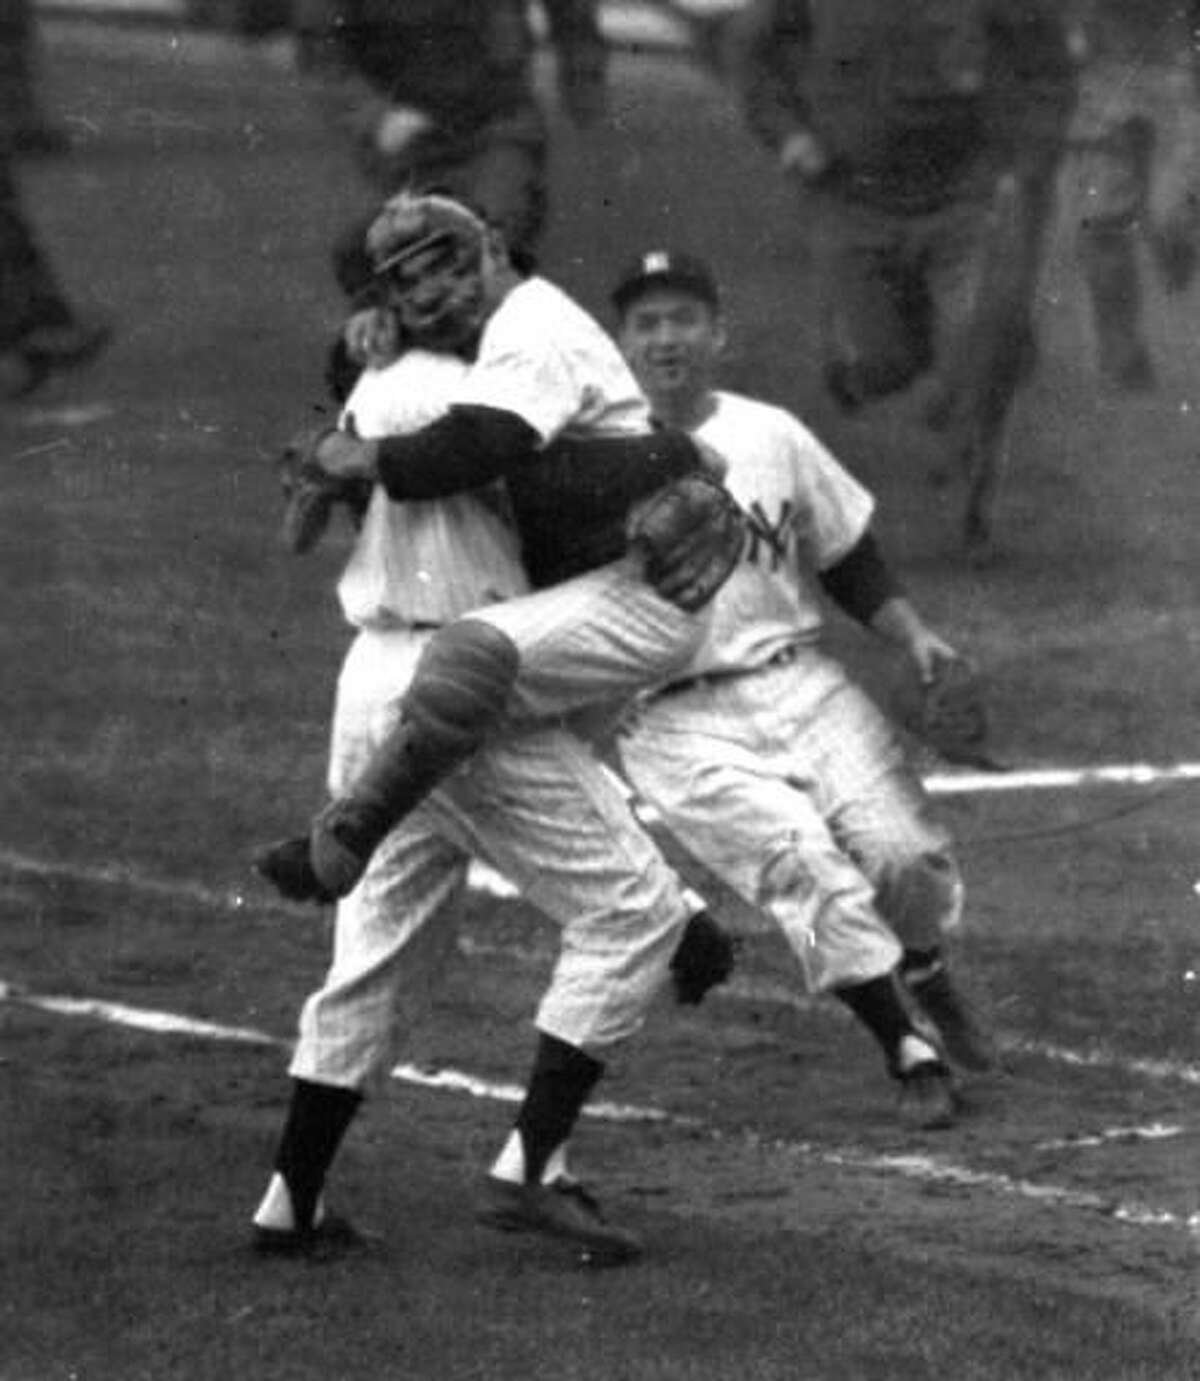 FILE- In this Oct. 8, 1956, file photo, New York Yankees catcher Yogi Berra is embraced by pitcher Don Larsen as he leaps into Larsen's arms at the end of Game 5 of baseball's World Series against the Brooklyn Dodgers at New York's Yankee Stadium. Larsen pitched a perfect game. The last go-round for the Los Angeles Dodgers' Hall of Fame announcer Vin Scully begins on Monday night, Sept. 19, 2016. The 88-year-old Scully has narrated some of the most memorable moments in baseball history since he began his career calling Brooklyn Dodgers games in 1950. (AP Photo, File)